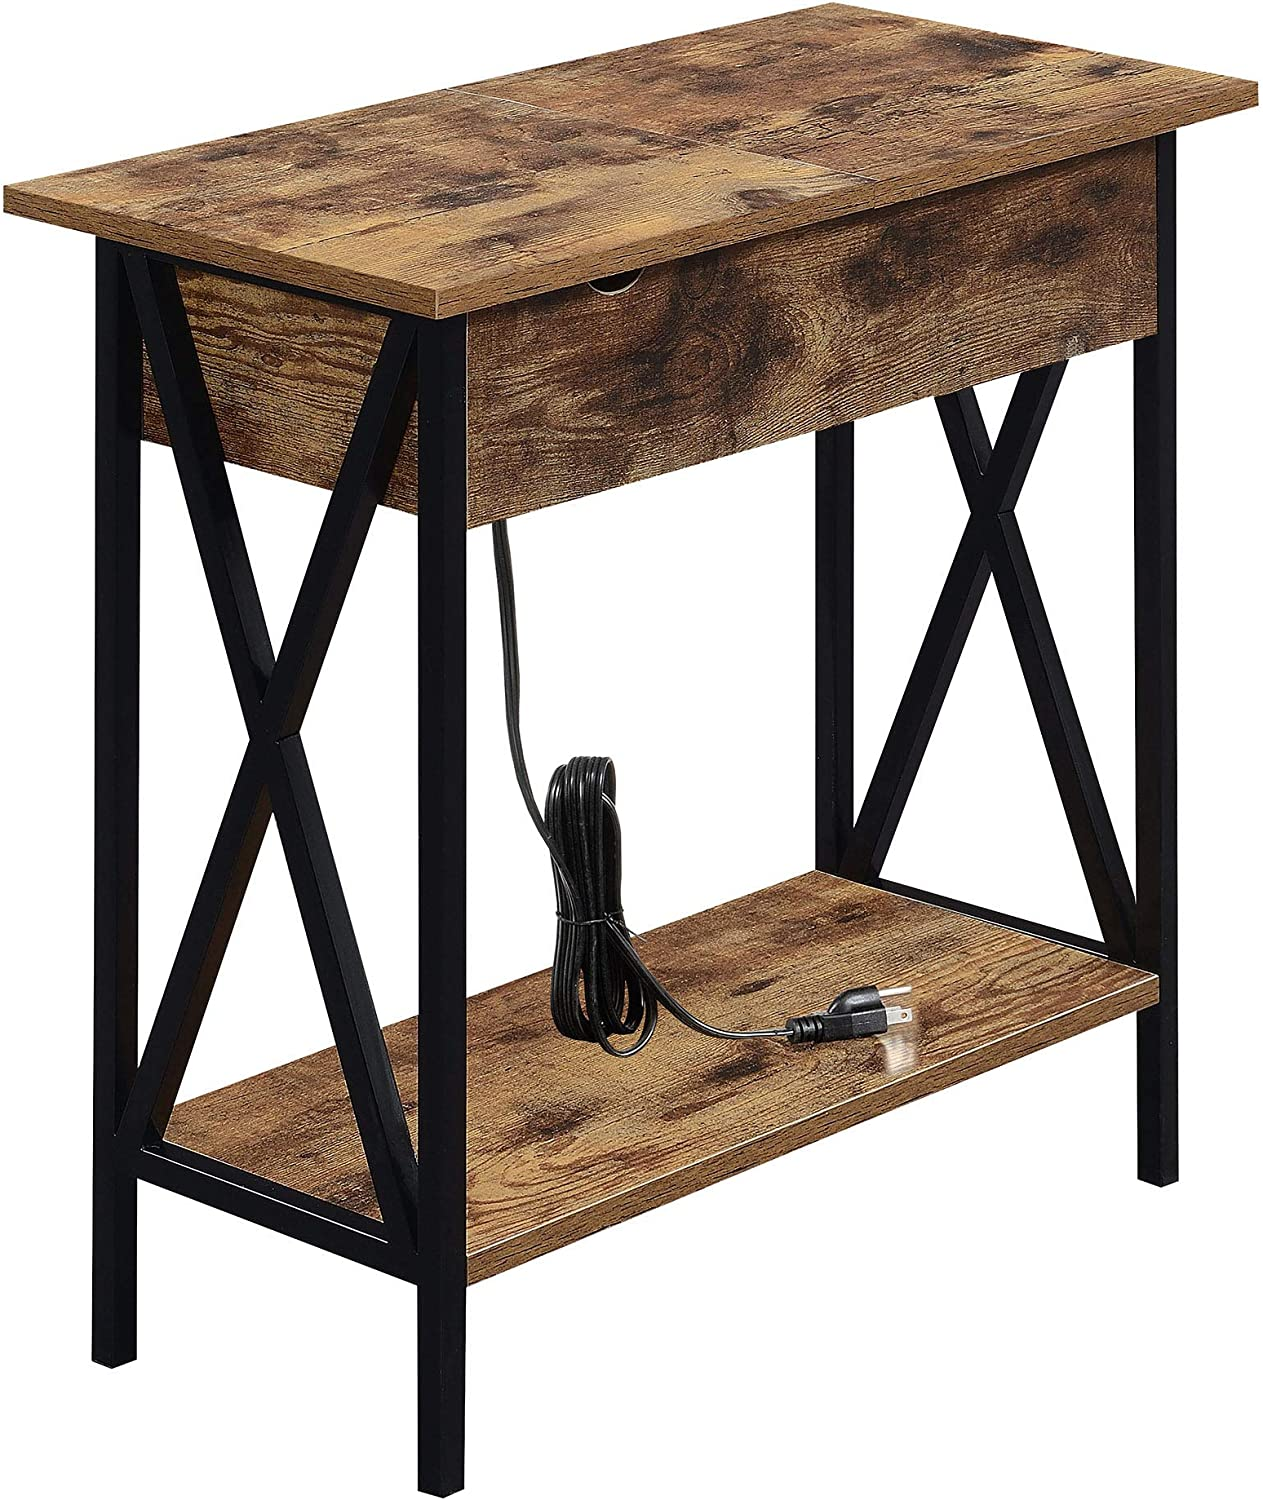 Convenience Concepts Tucson Flip Top End Table with Charging Station, Barnwood / Black